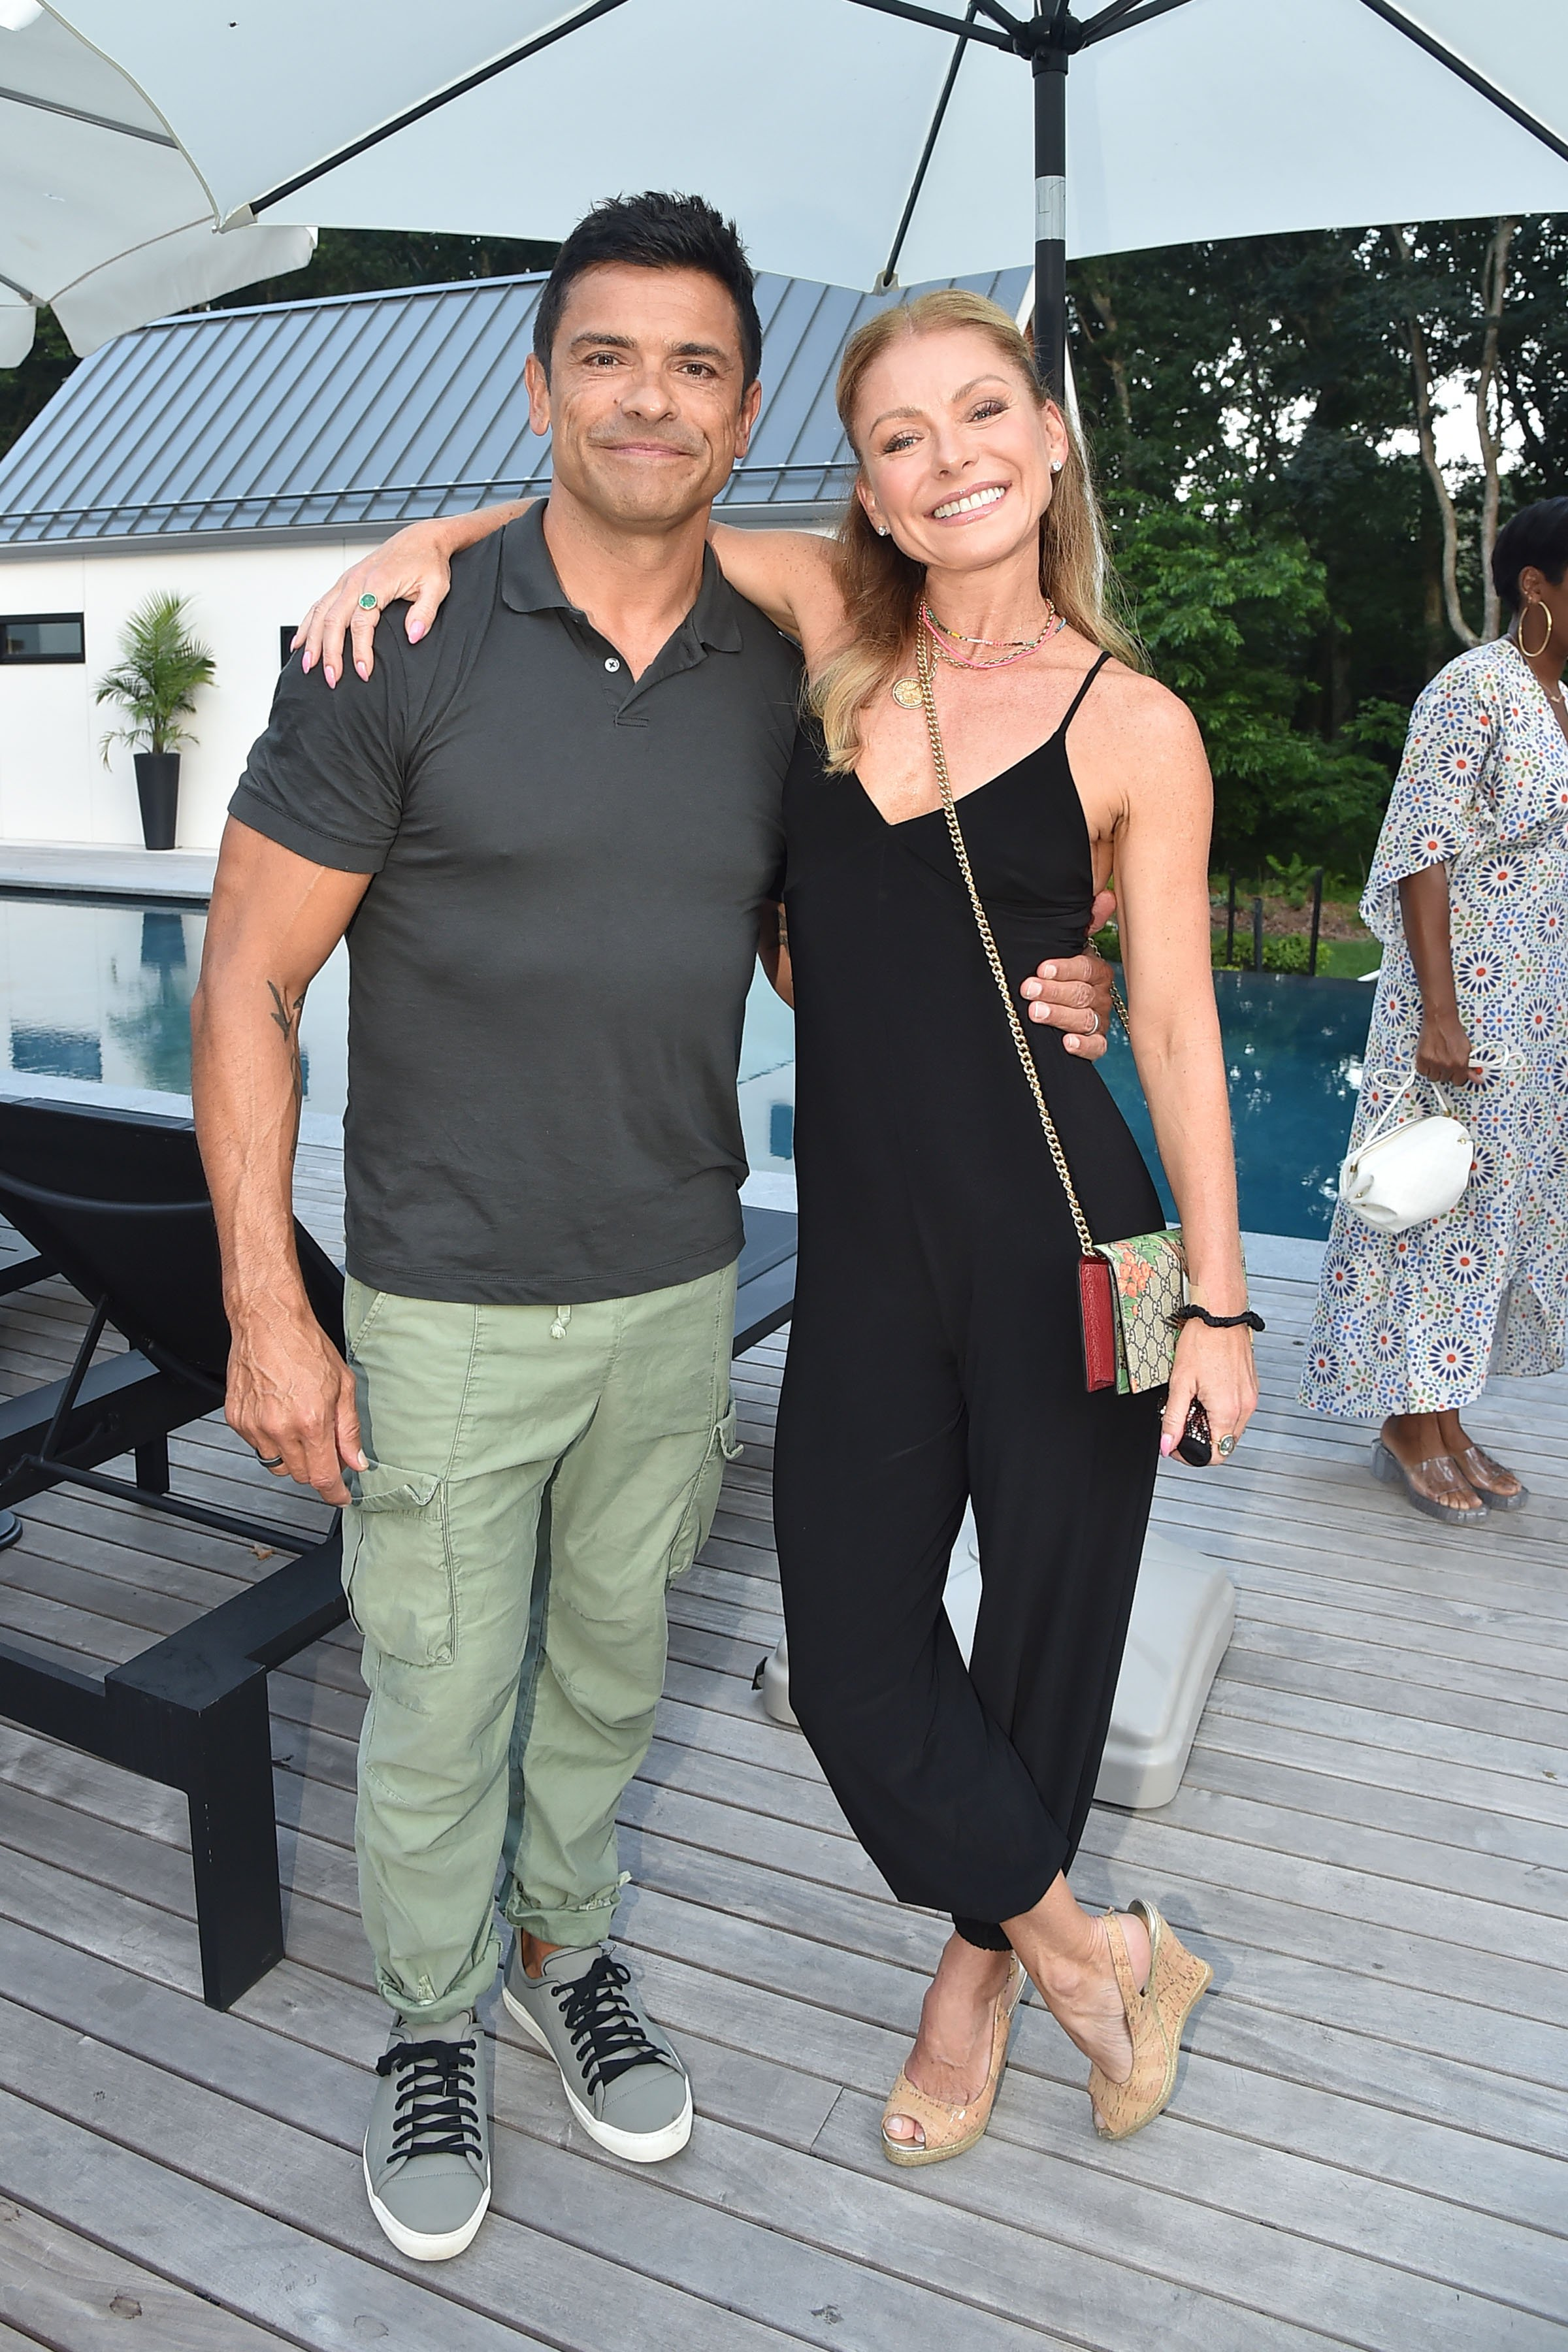 Mark Consuelos and Kelly Ripa at the Launch Of Yoga Pant Nation By Laurie Gelman in Water Mill, New York City | Photo: Patrick McMullan via Getty Images